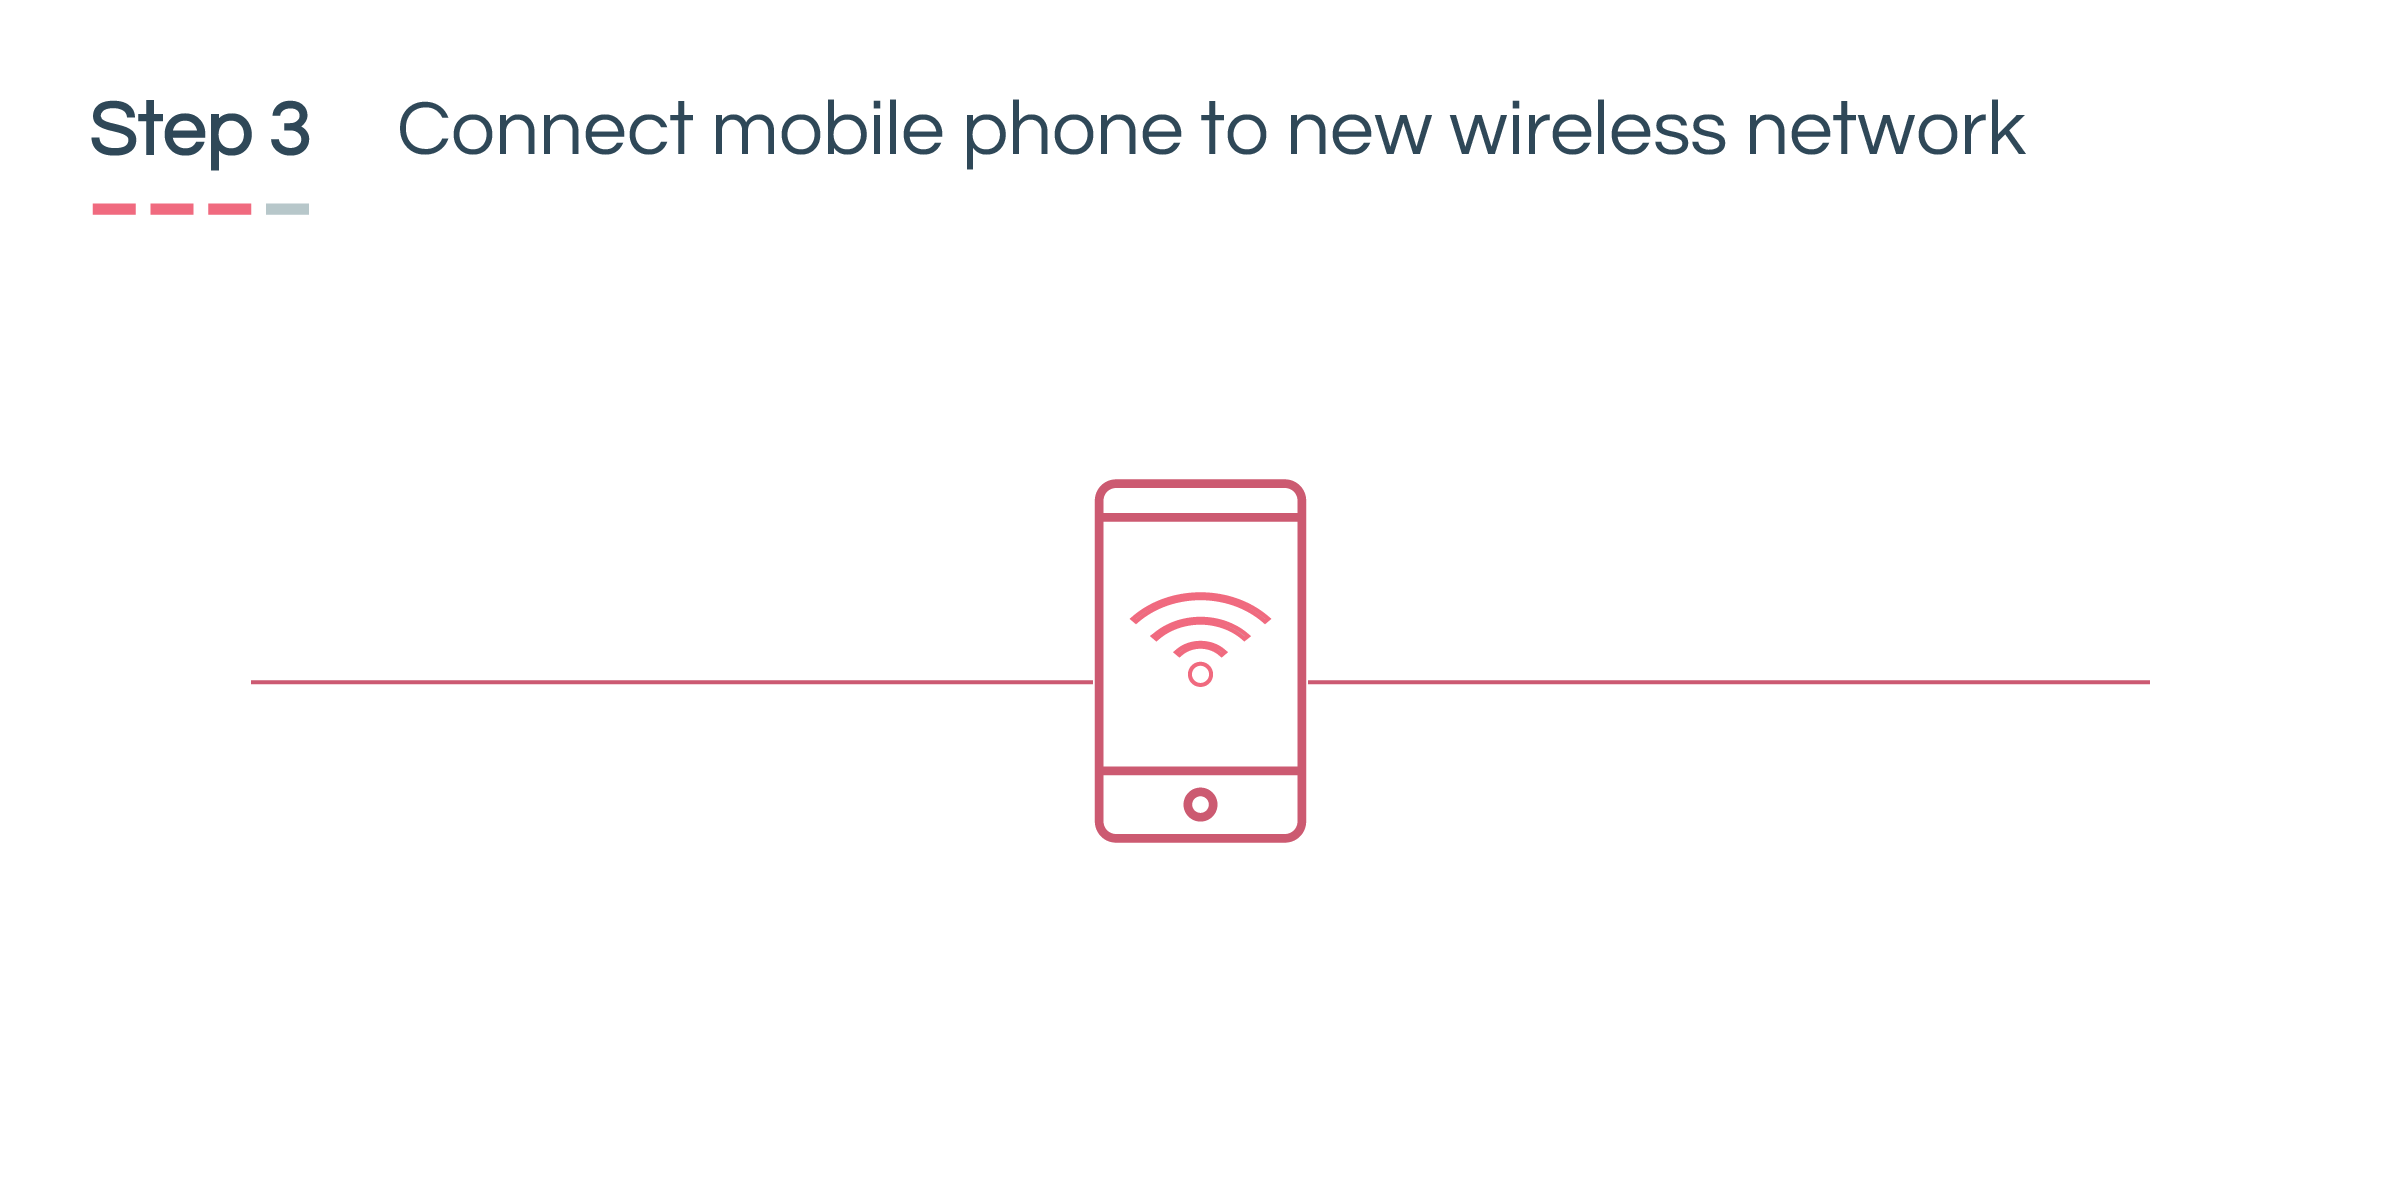 Step 3: Connect mobile phone to new wireless network